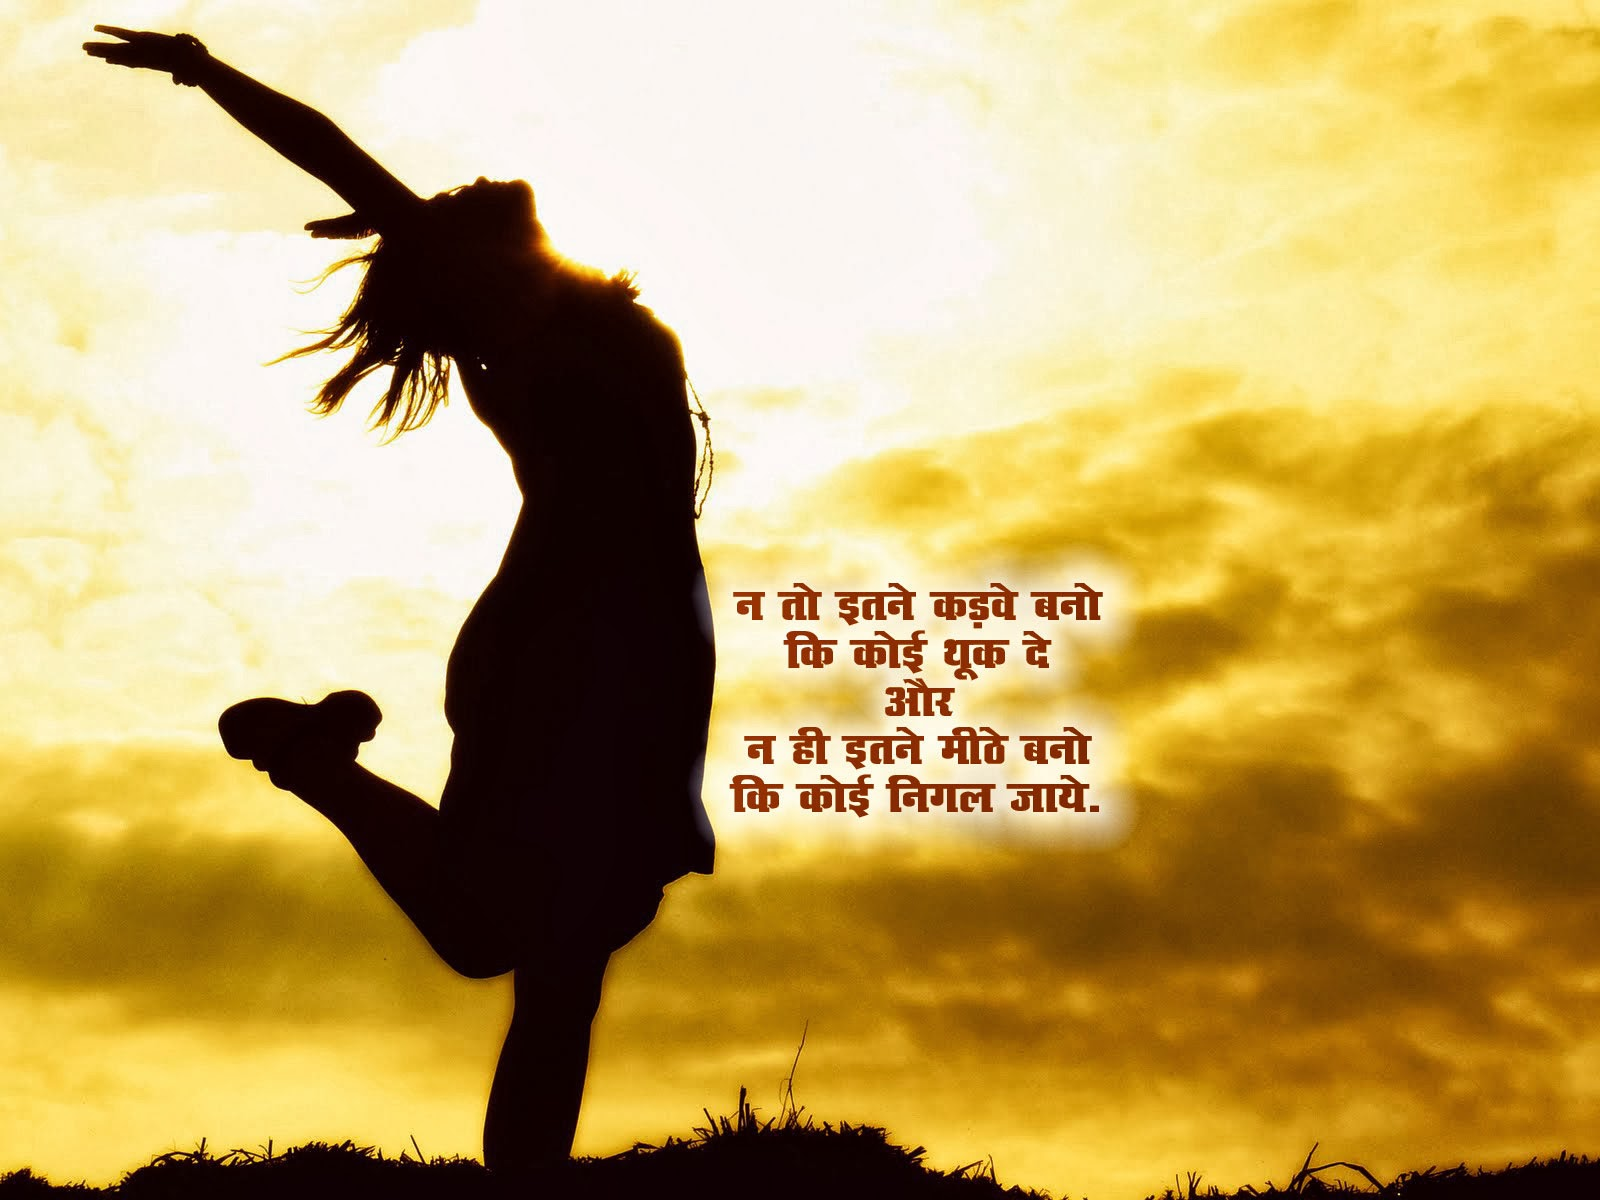 Hindi Quotes Wallpapers | Hindu God Wallpaper